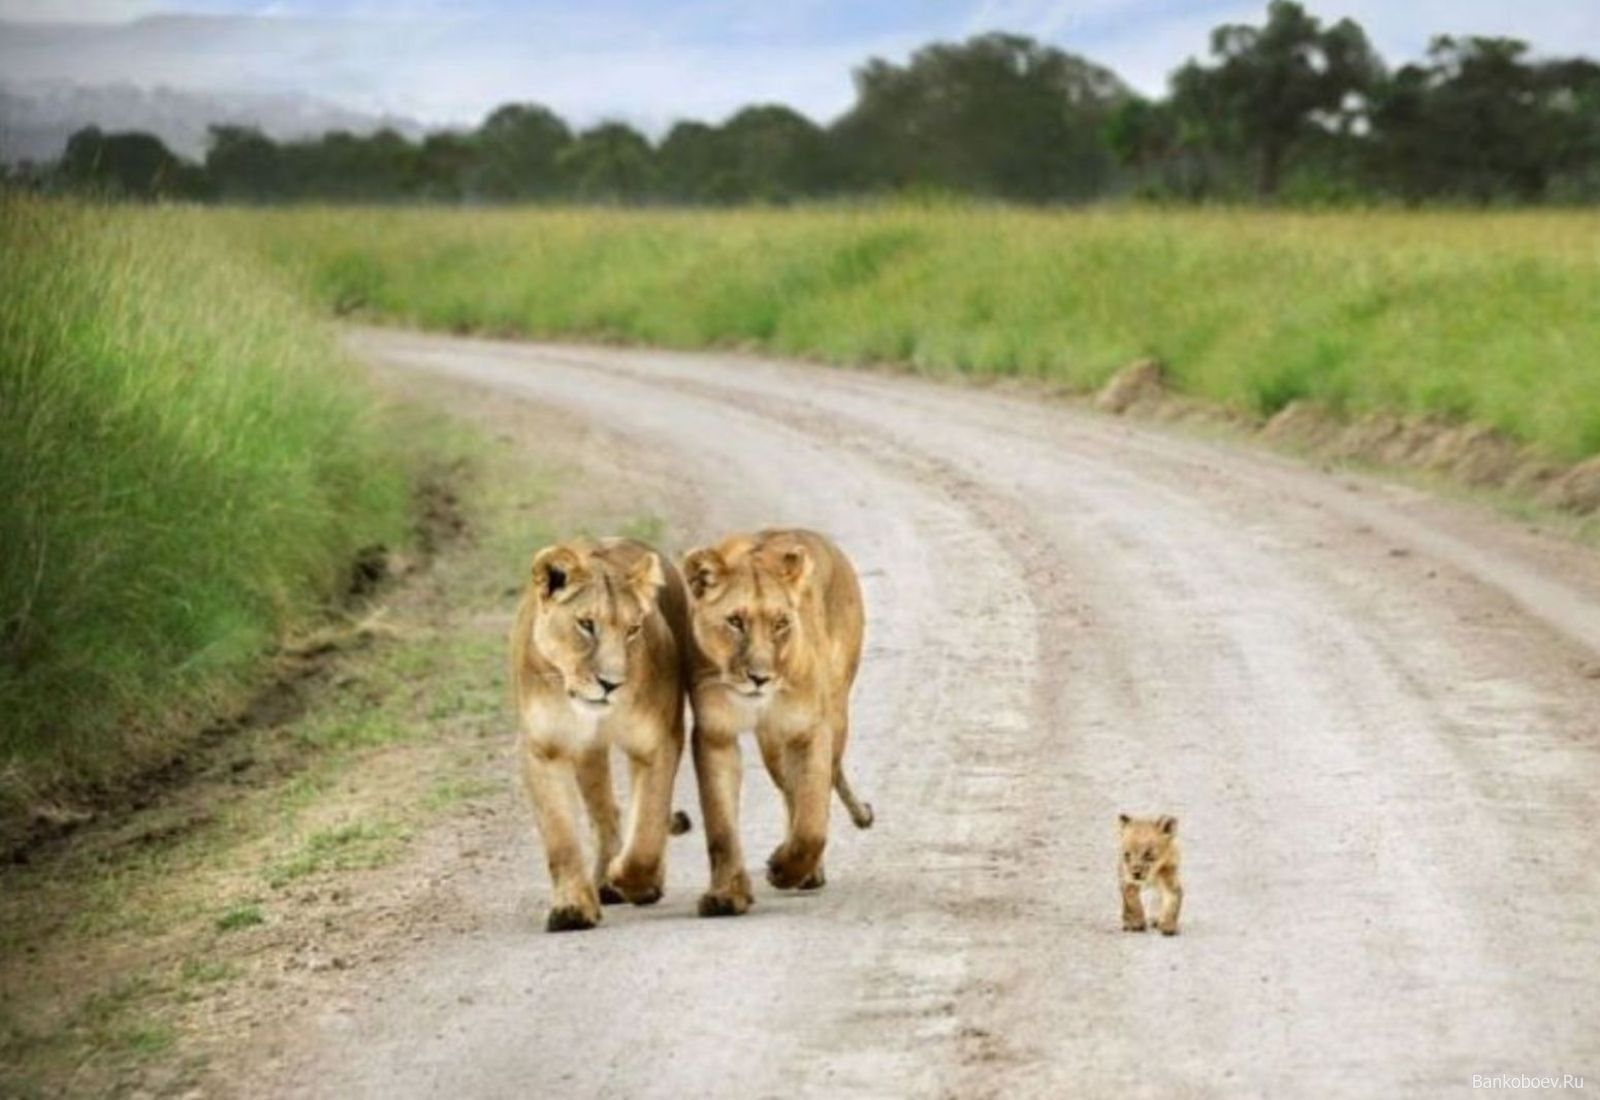 Baby Wild Animals Wallpapers Top Free Baby Wild Animals Backgrounds Wallpaperaccess